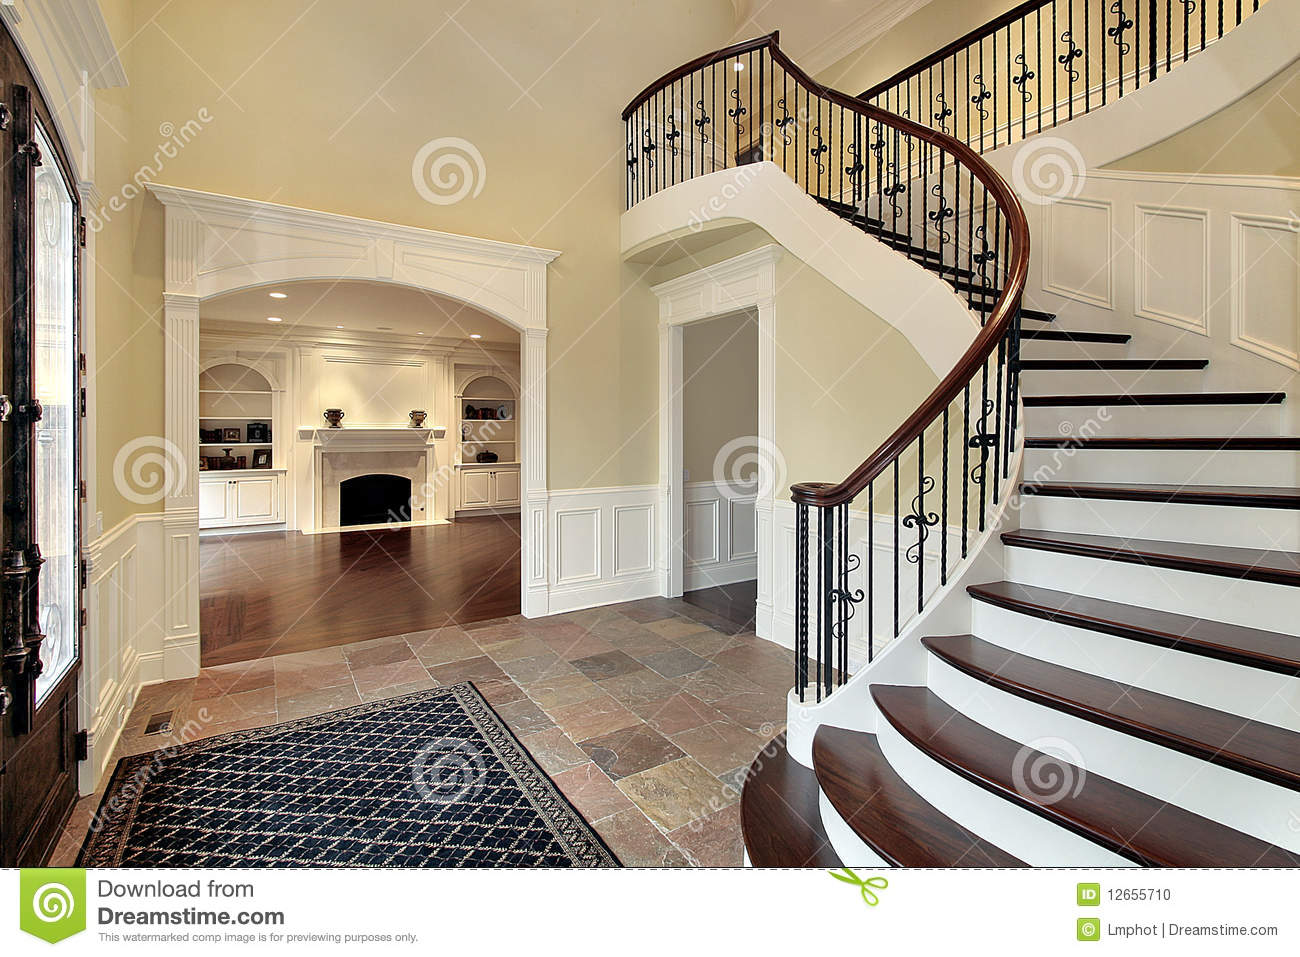 Foyer Into Room : Foyer with view into living room stock photo image